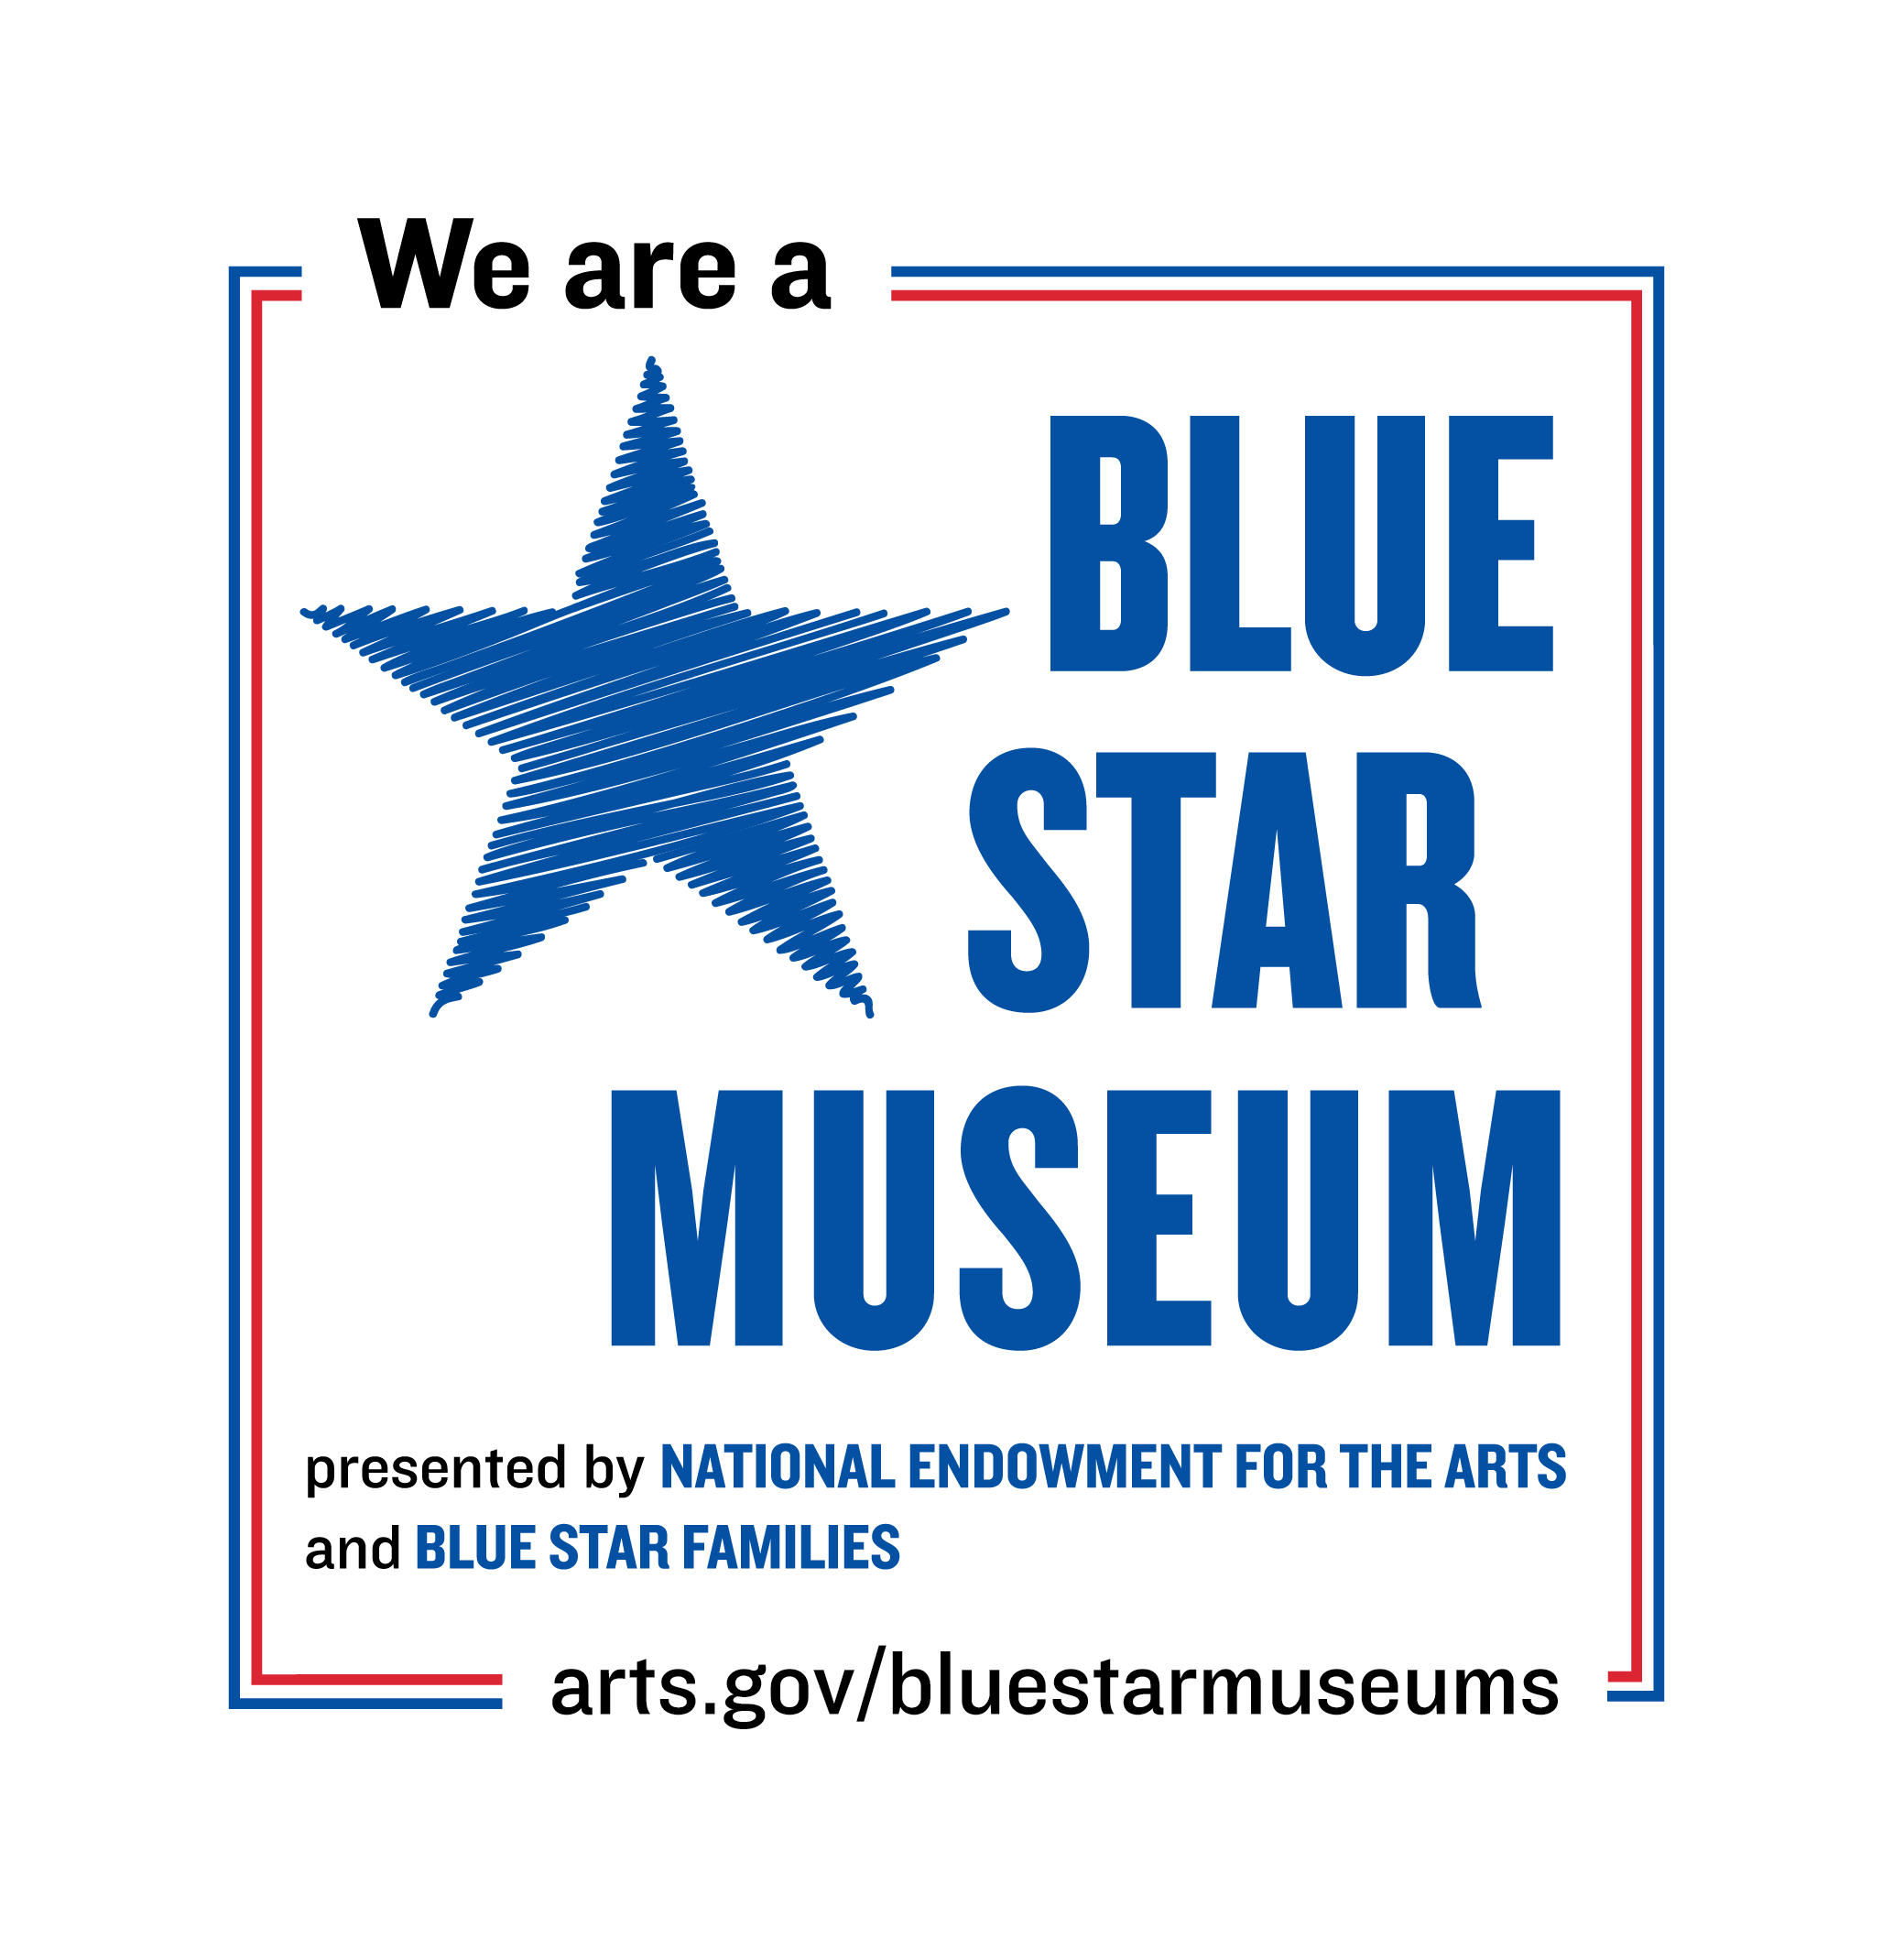 Blue Star Museums 2019